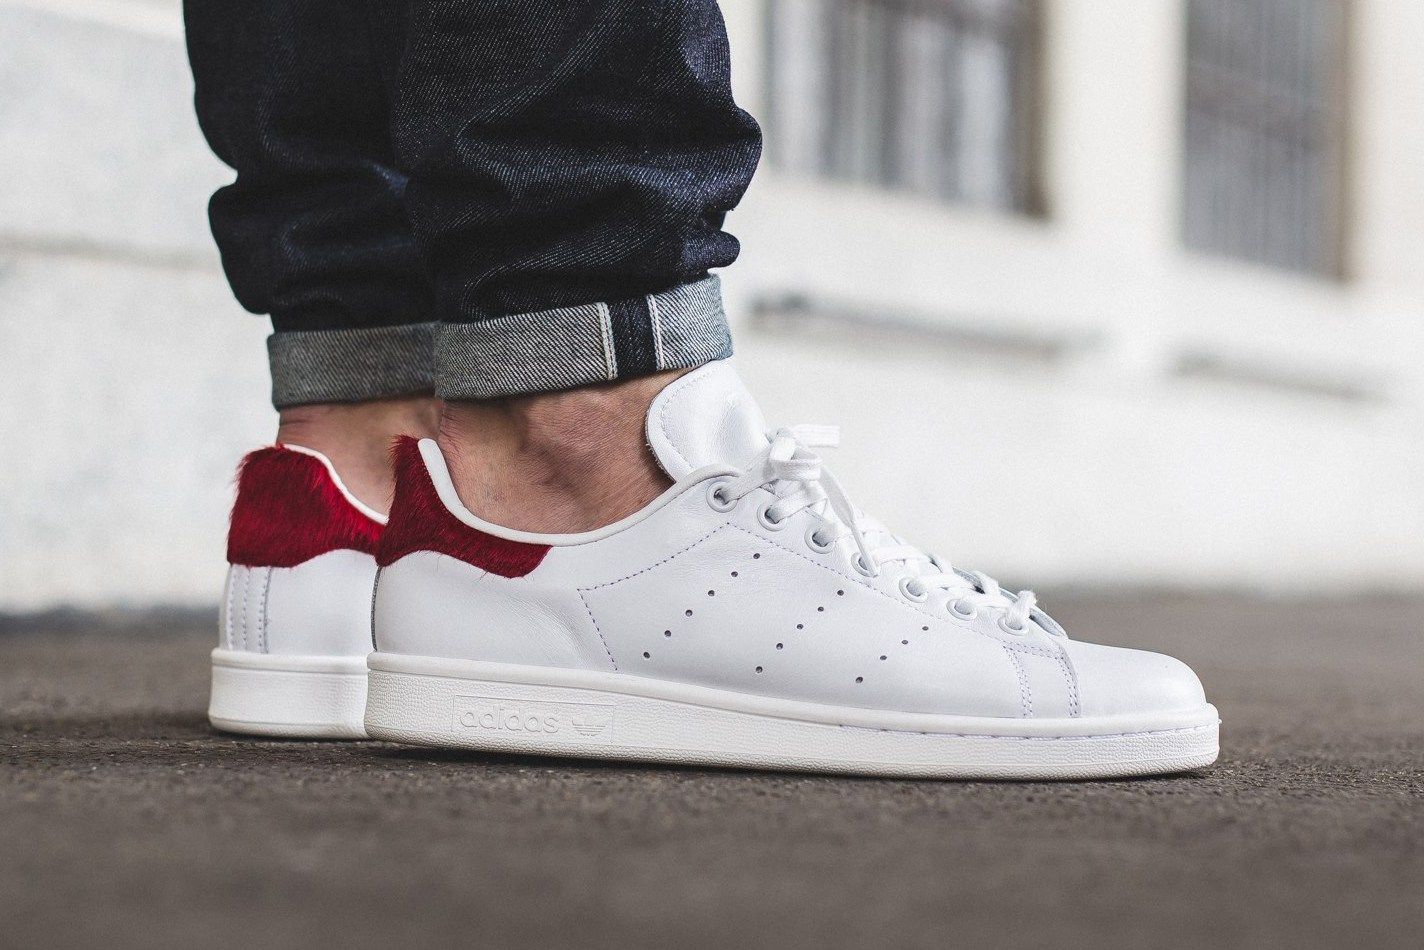 adidas originali aggiunge red pony capelli a stan smith pinterest